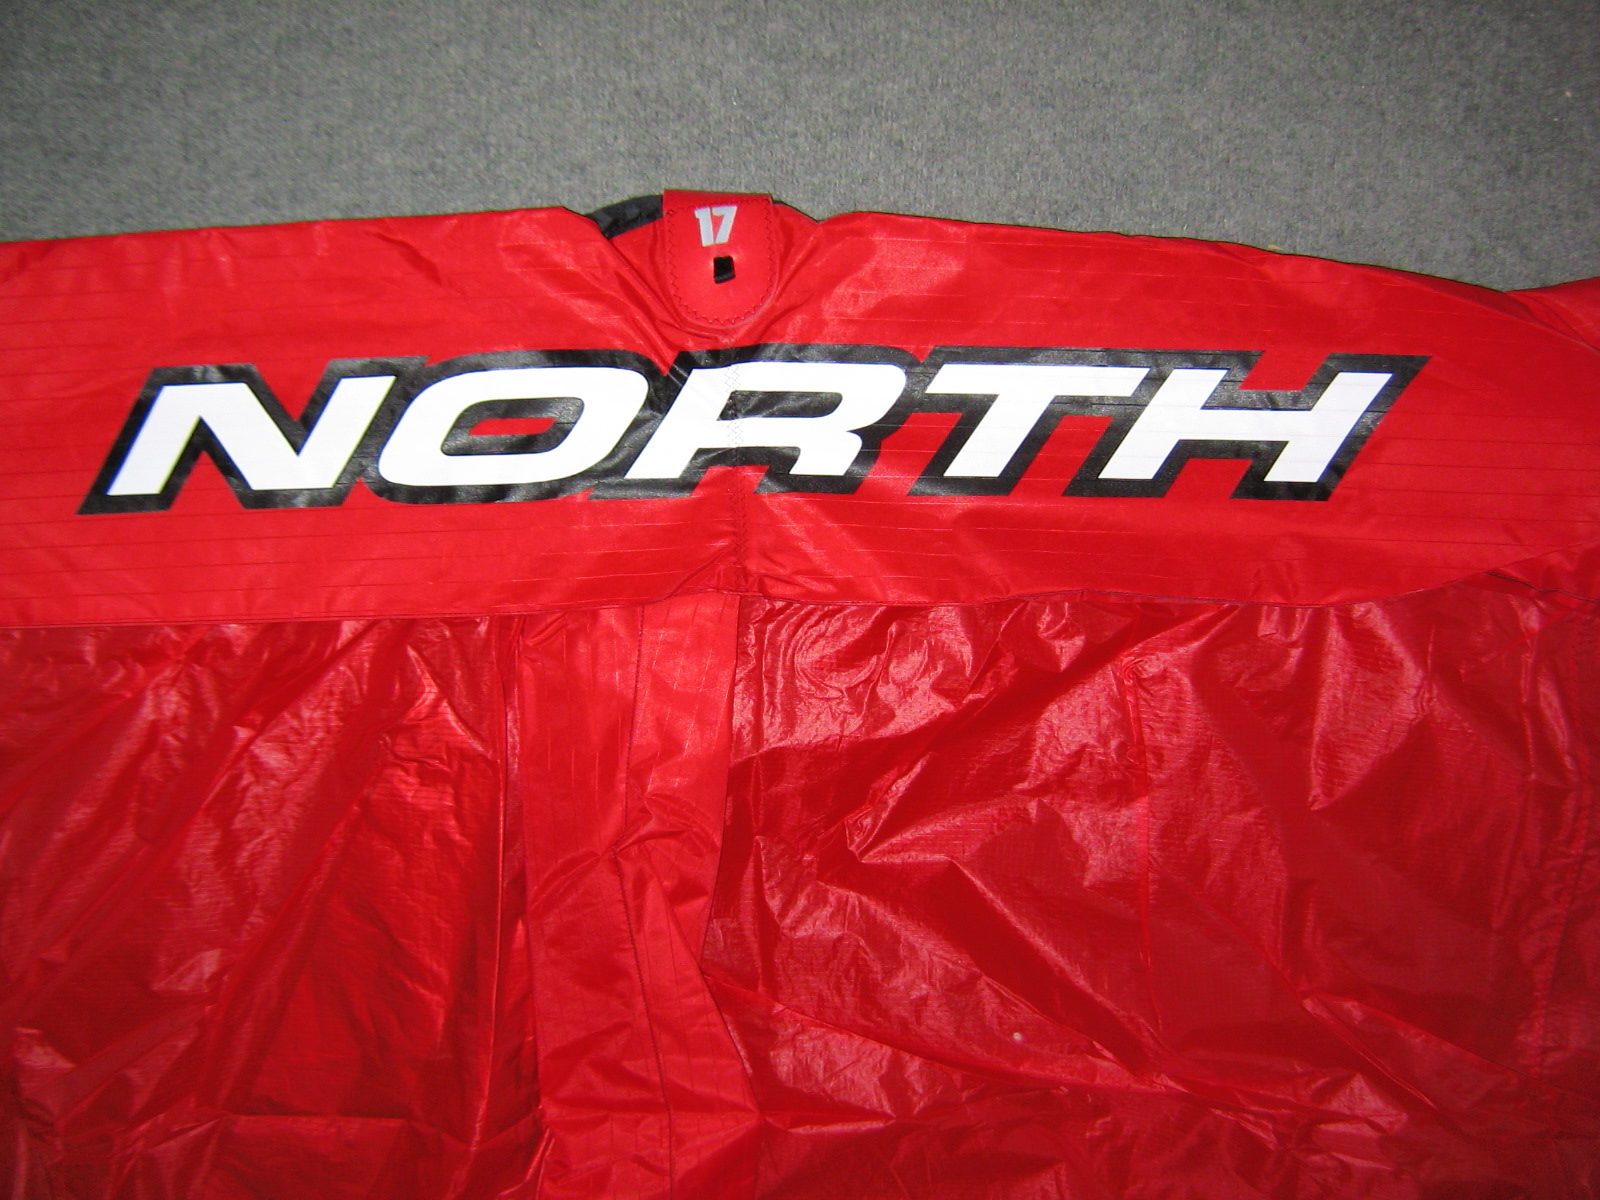 North Sails KITE ERNYŐ / NORTH TORO /